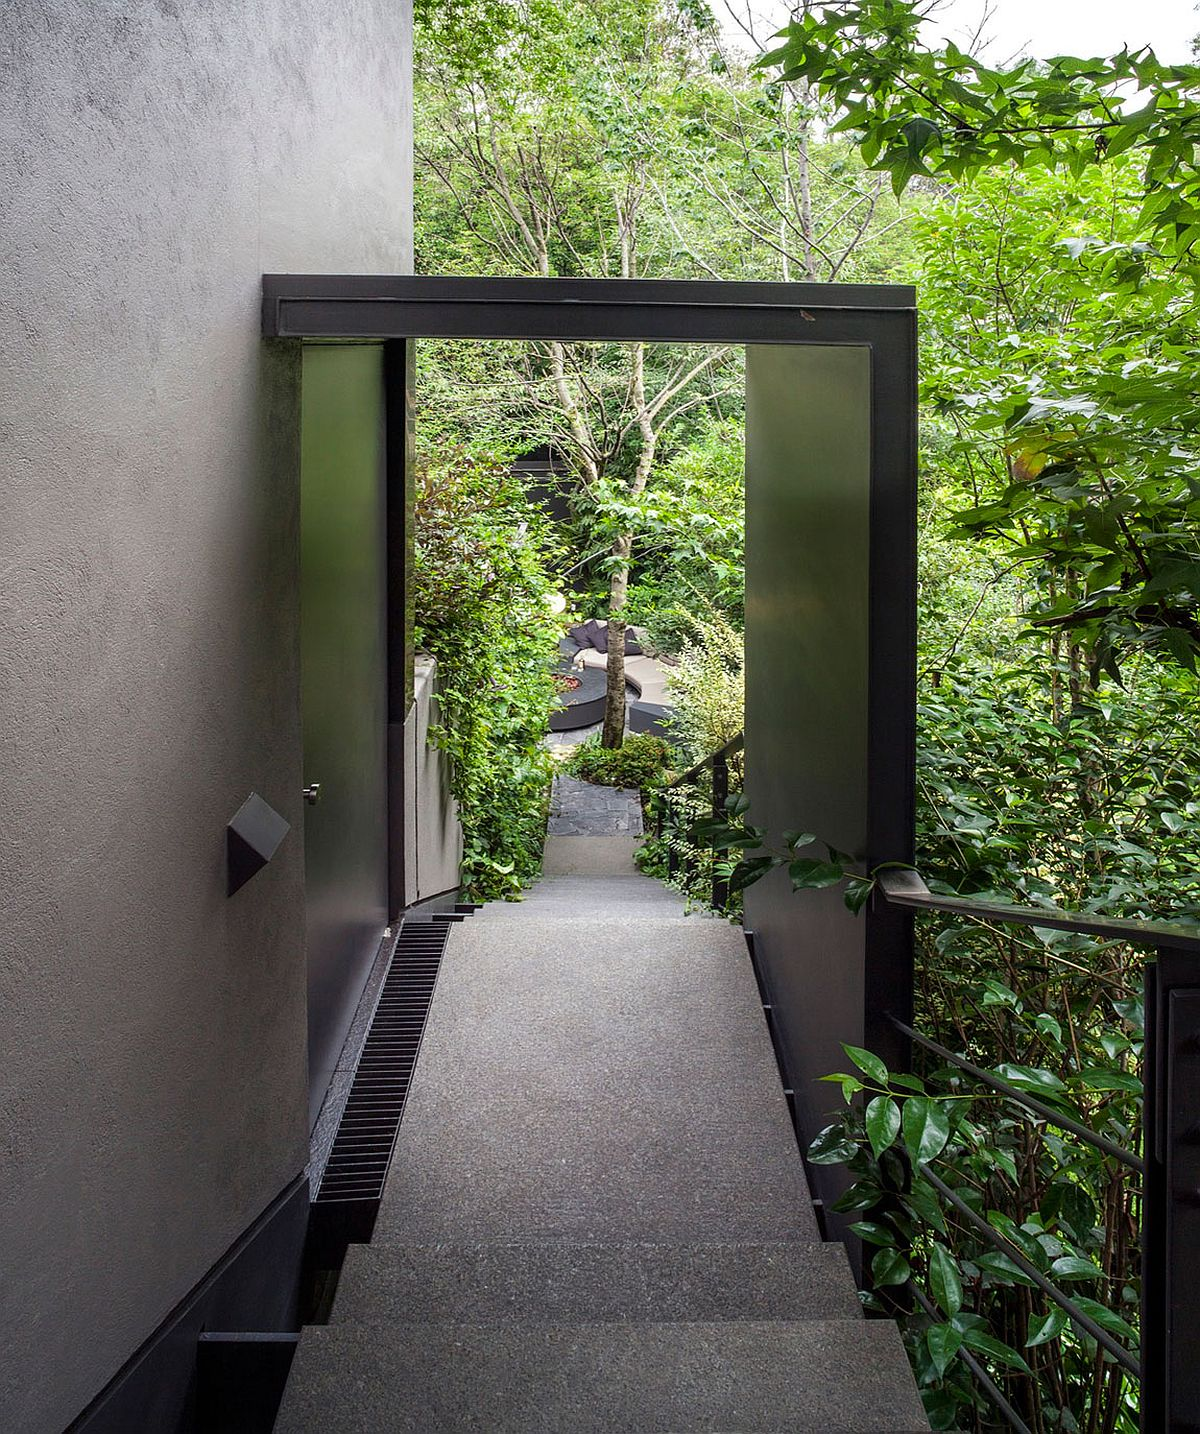 Staircase-leading-the-house-surrounded-by-greenery